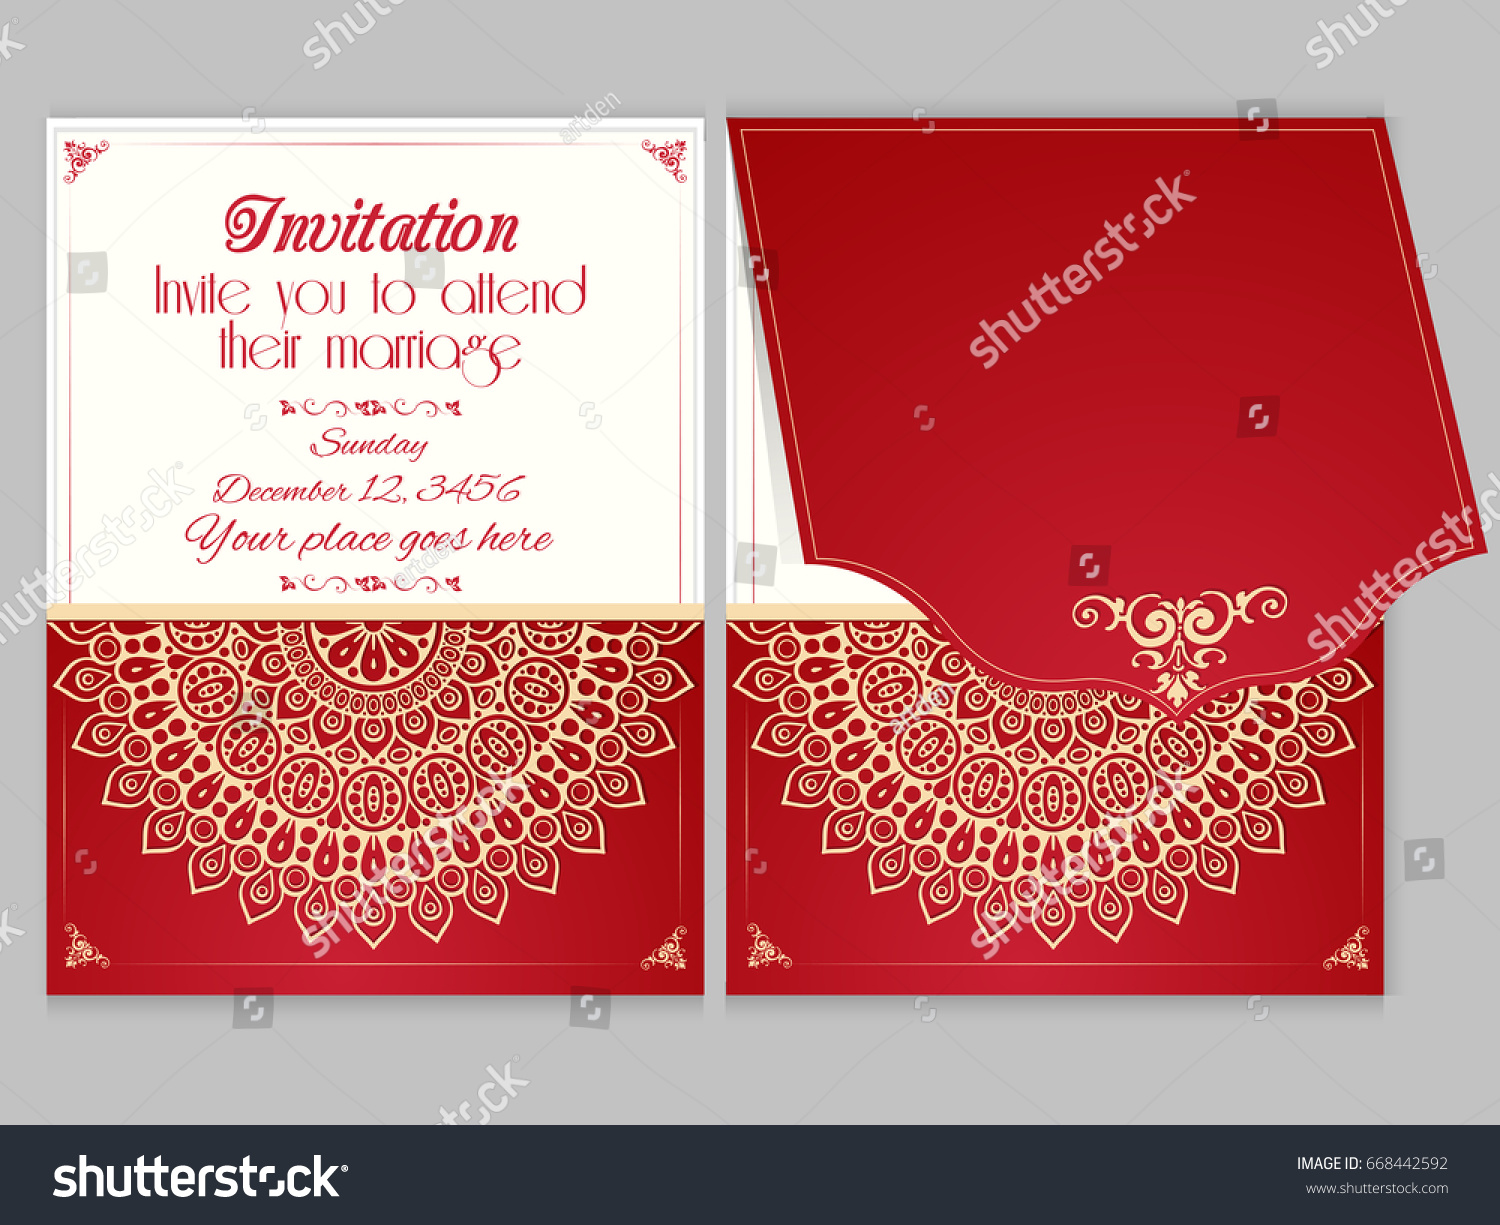 Nice Creative Wedding Card Design Templates Stock Vector (Royalty ...